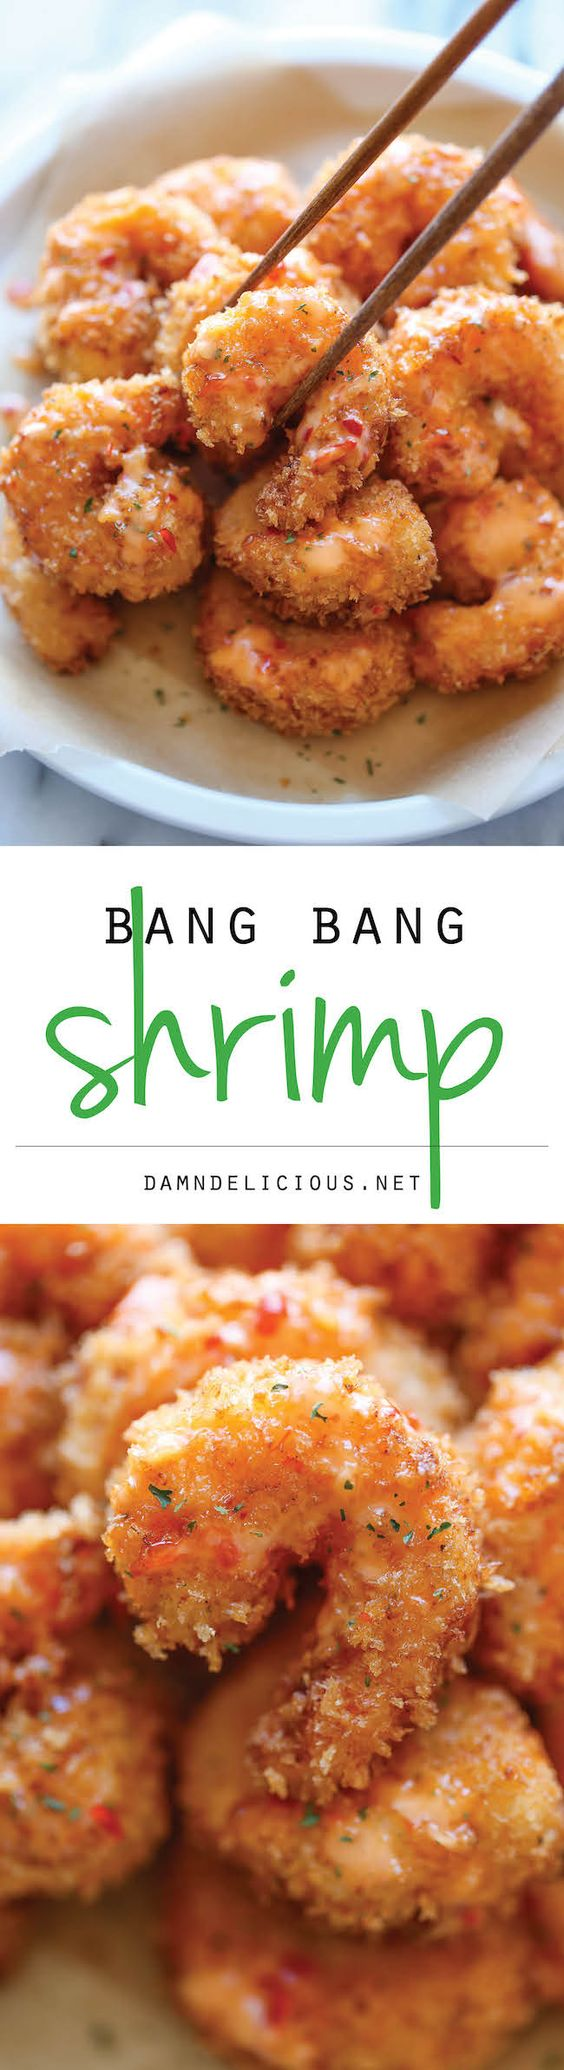 Bang Bang Shrimp - This tastes just like Cheesecake Factory's version, except it's way cheaper and so much tastier!